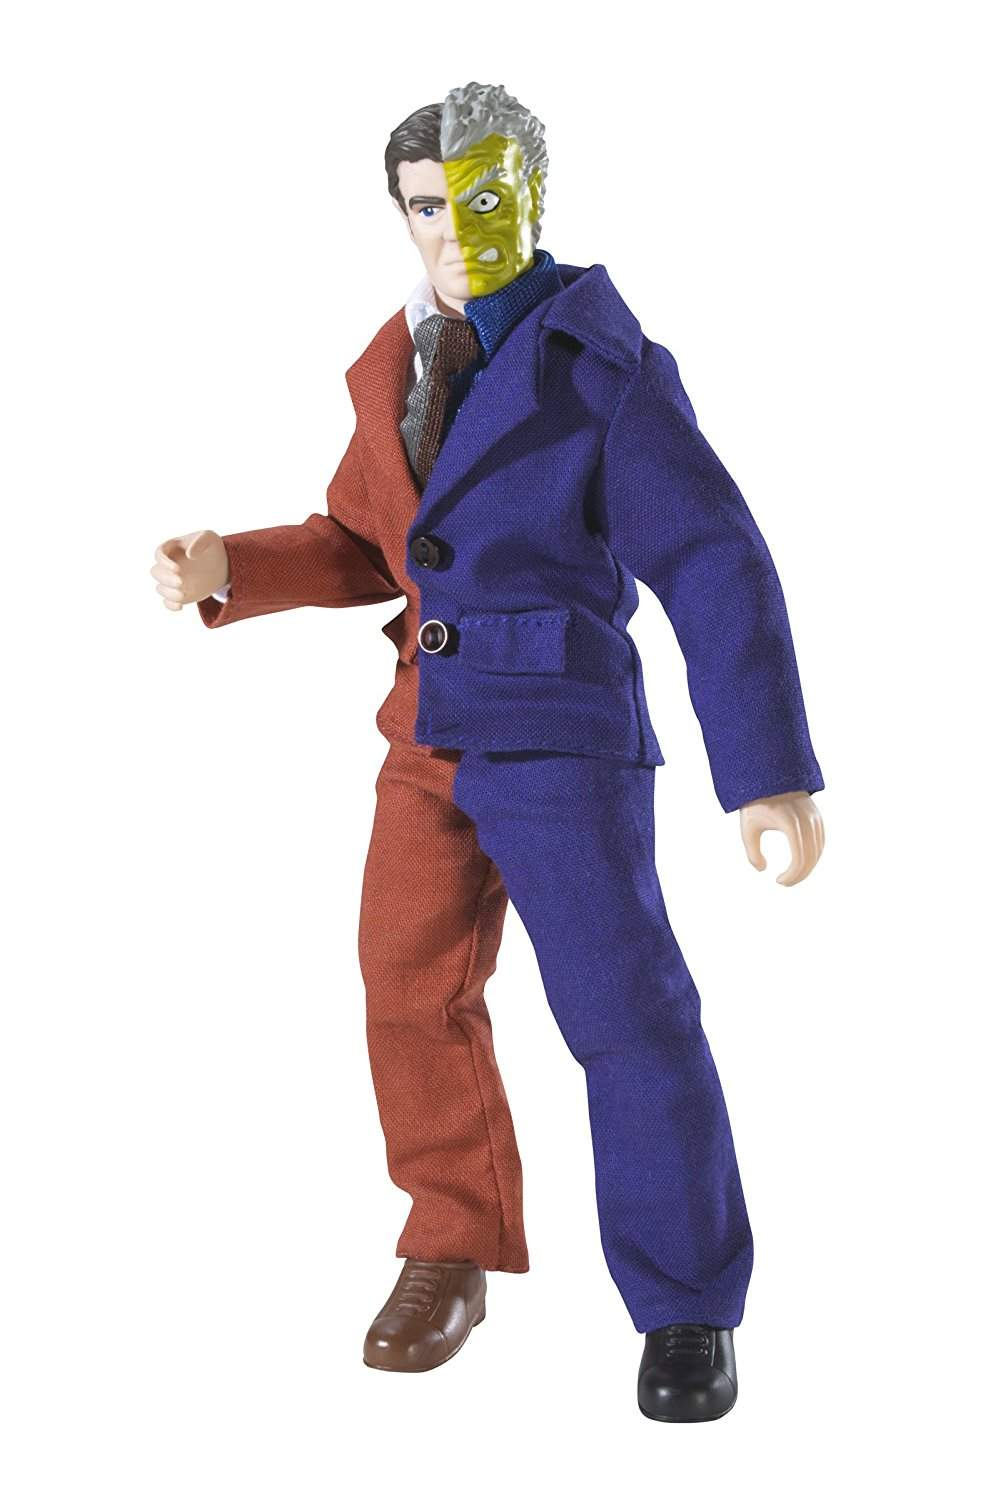 Retro-Action DC Super Heroes Two-Face Figure